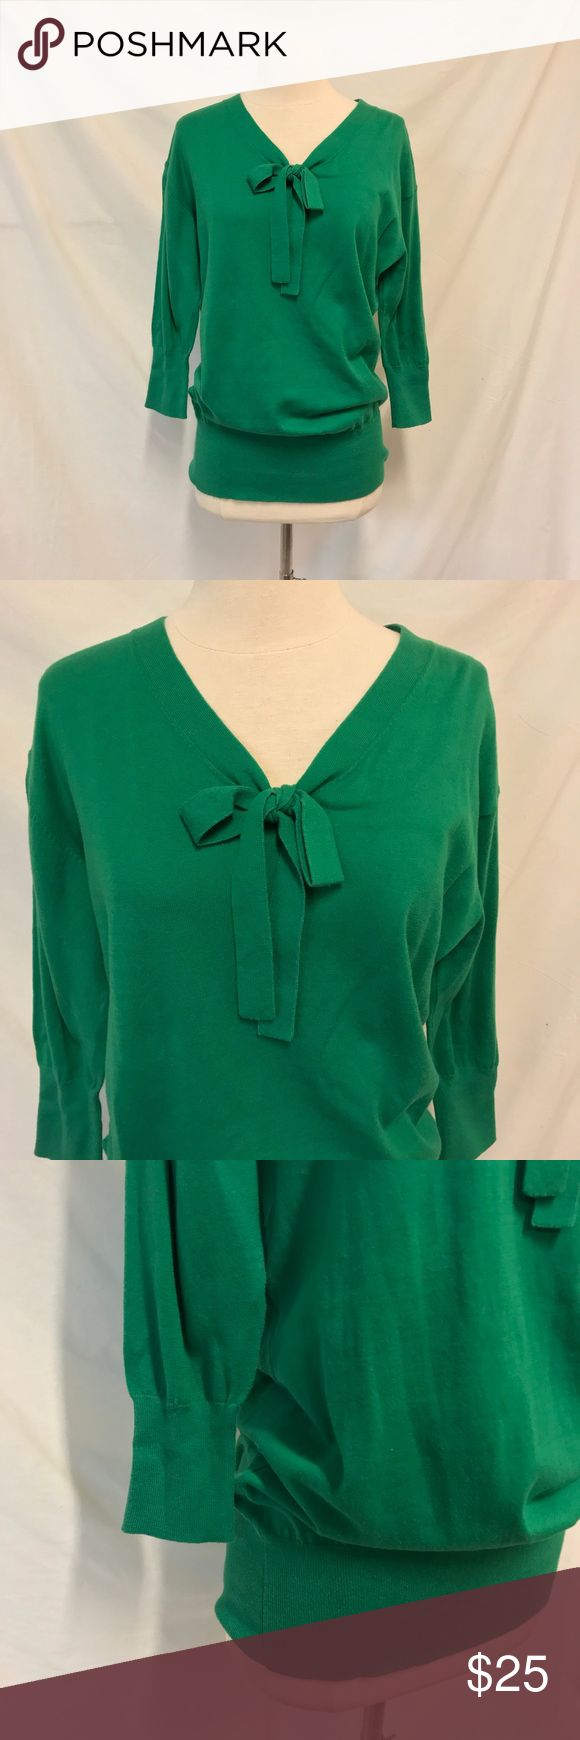 CAbi Lucky Pullover Tunic Sweater Style 822 Size M CAbi. Size medium. Lucky pullover Tunic Sweater. Kelly green color. Long Sleeve. Ribbed hem and slouchy Top. Bow tie at the neckline. Long Sleeve. Lightweight material. Not lined. Excellent used condition with no signs of wear. Bust: 21 inches. Length: 31 inches. ALL MEASUREMENTS ARE TAKEN WITH ITEM LAYING FLAT. 100% cotton. ||1223|| CAbi Sweaters